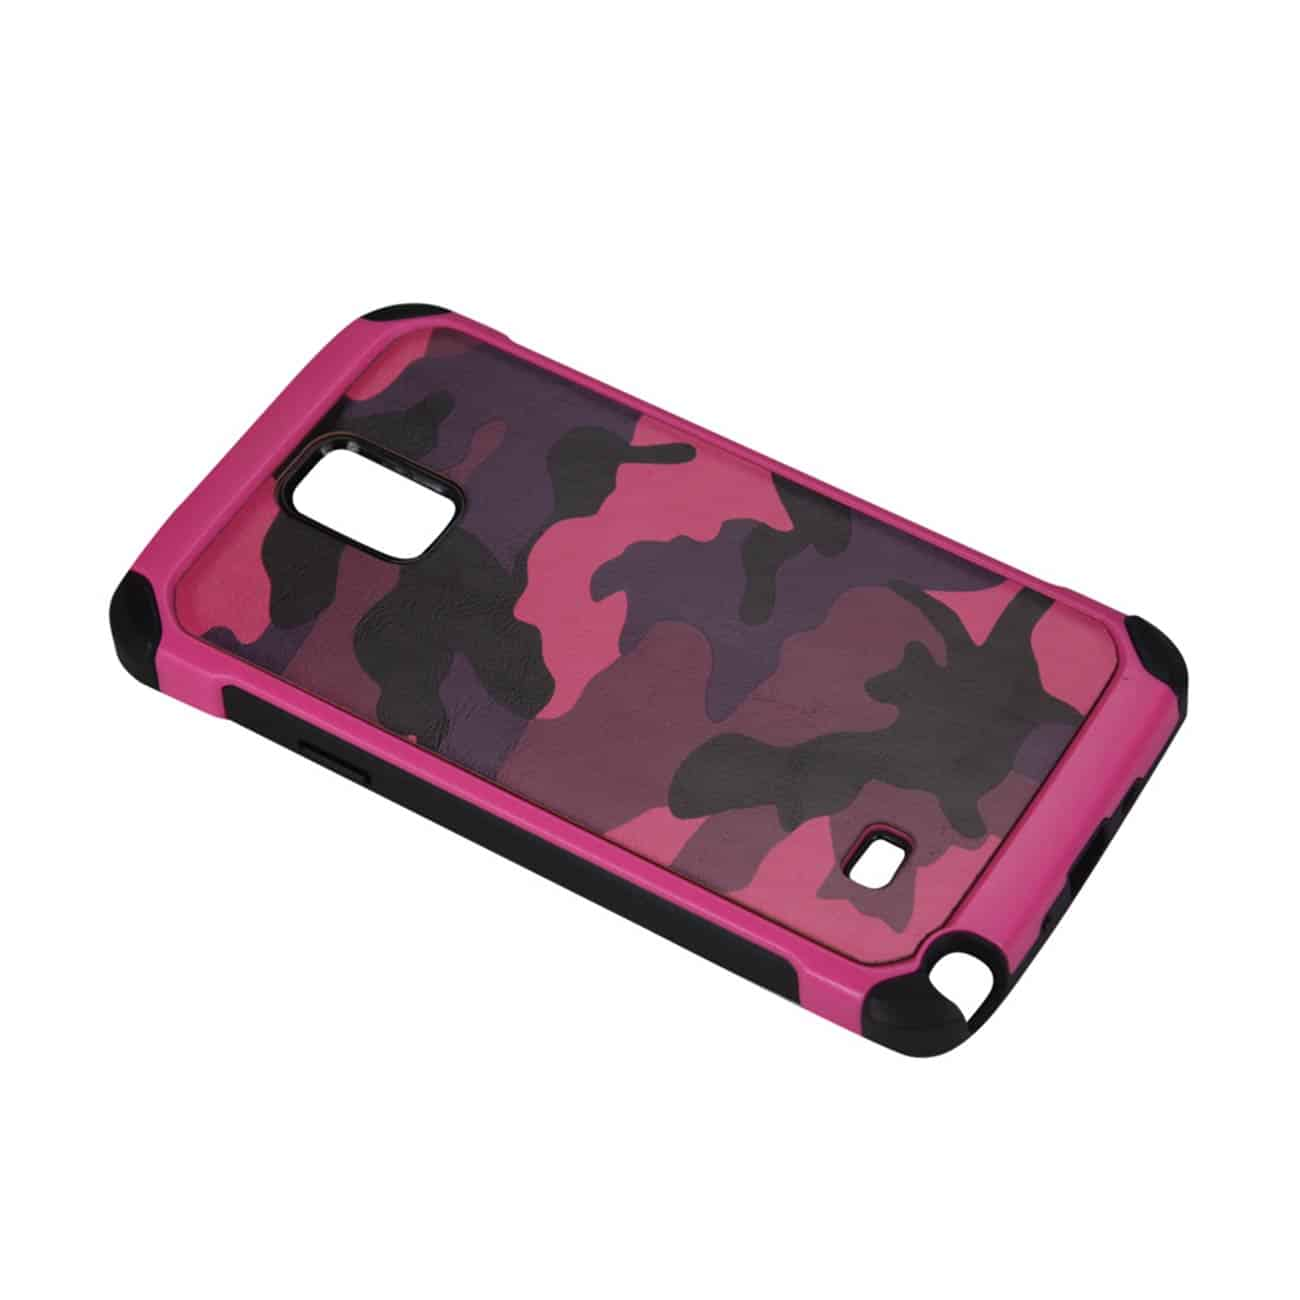 SAMSUNG GALAXY NOTE 4 HYBRID LEATHER CAMOUFLAGE CASE IN PINK